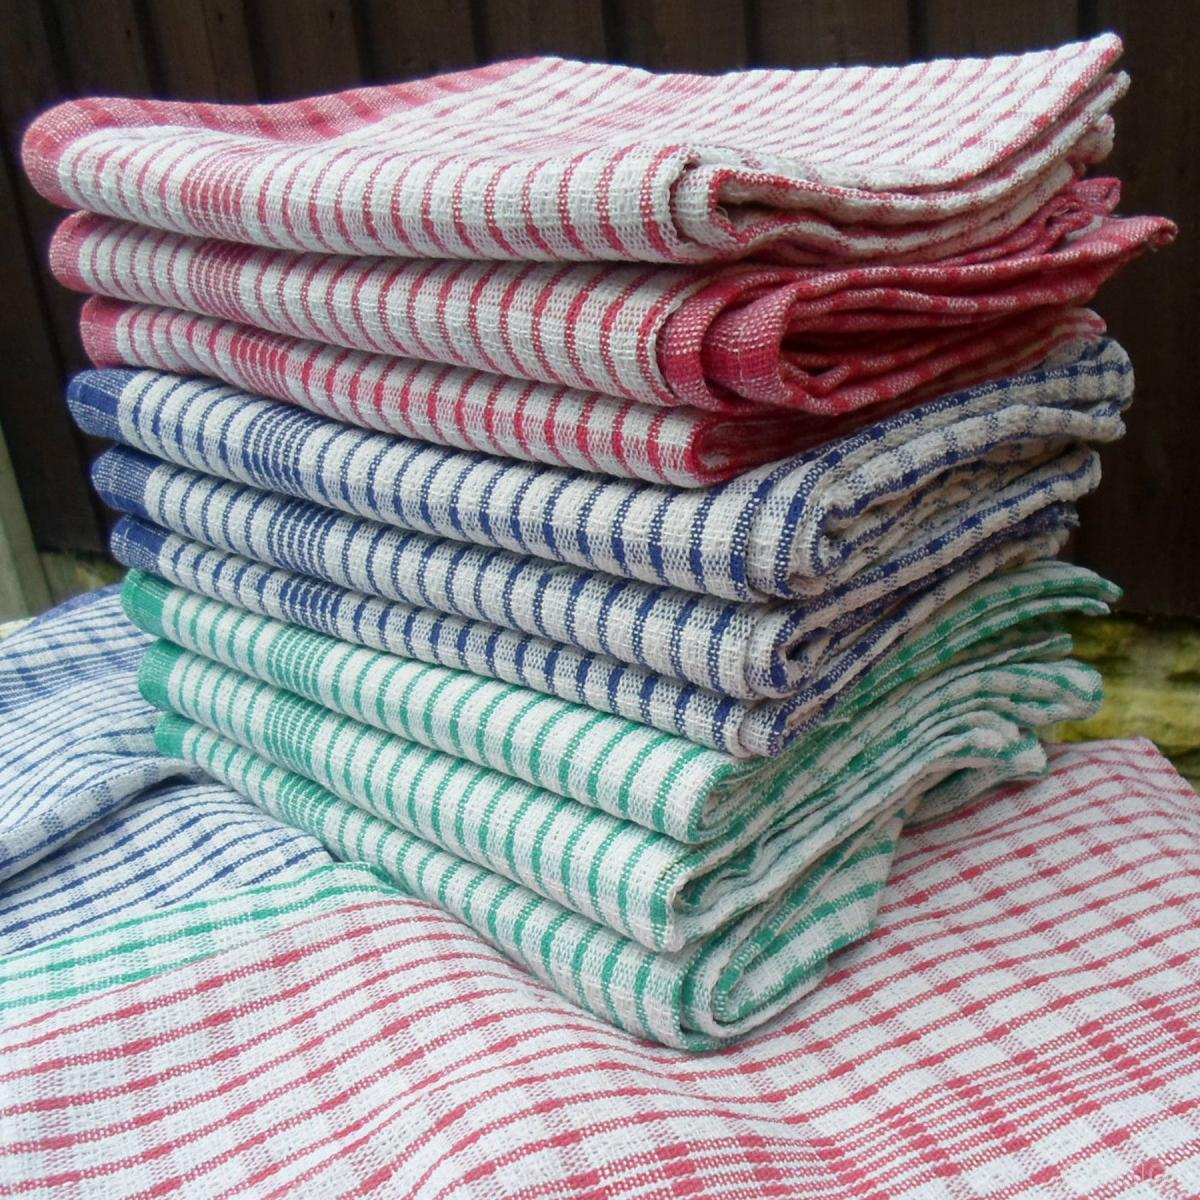 Super Absorbent Kitchen Tea Towels at Wholesale Prices